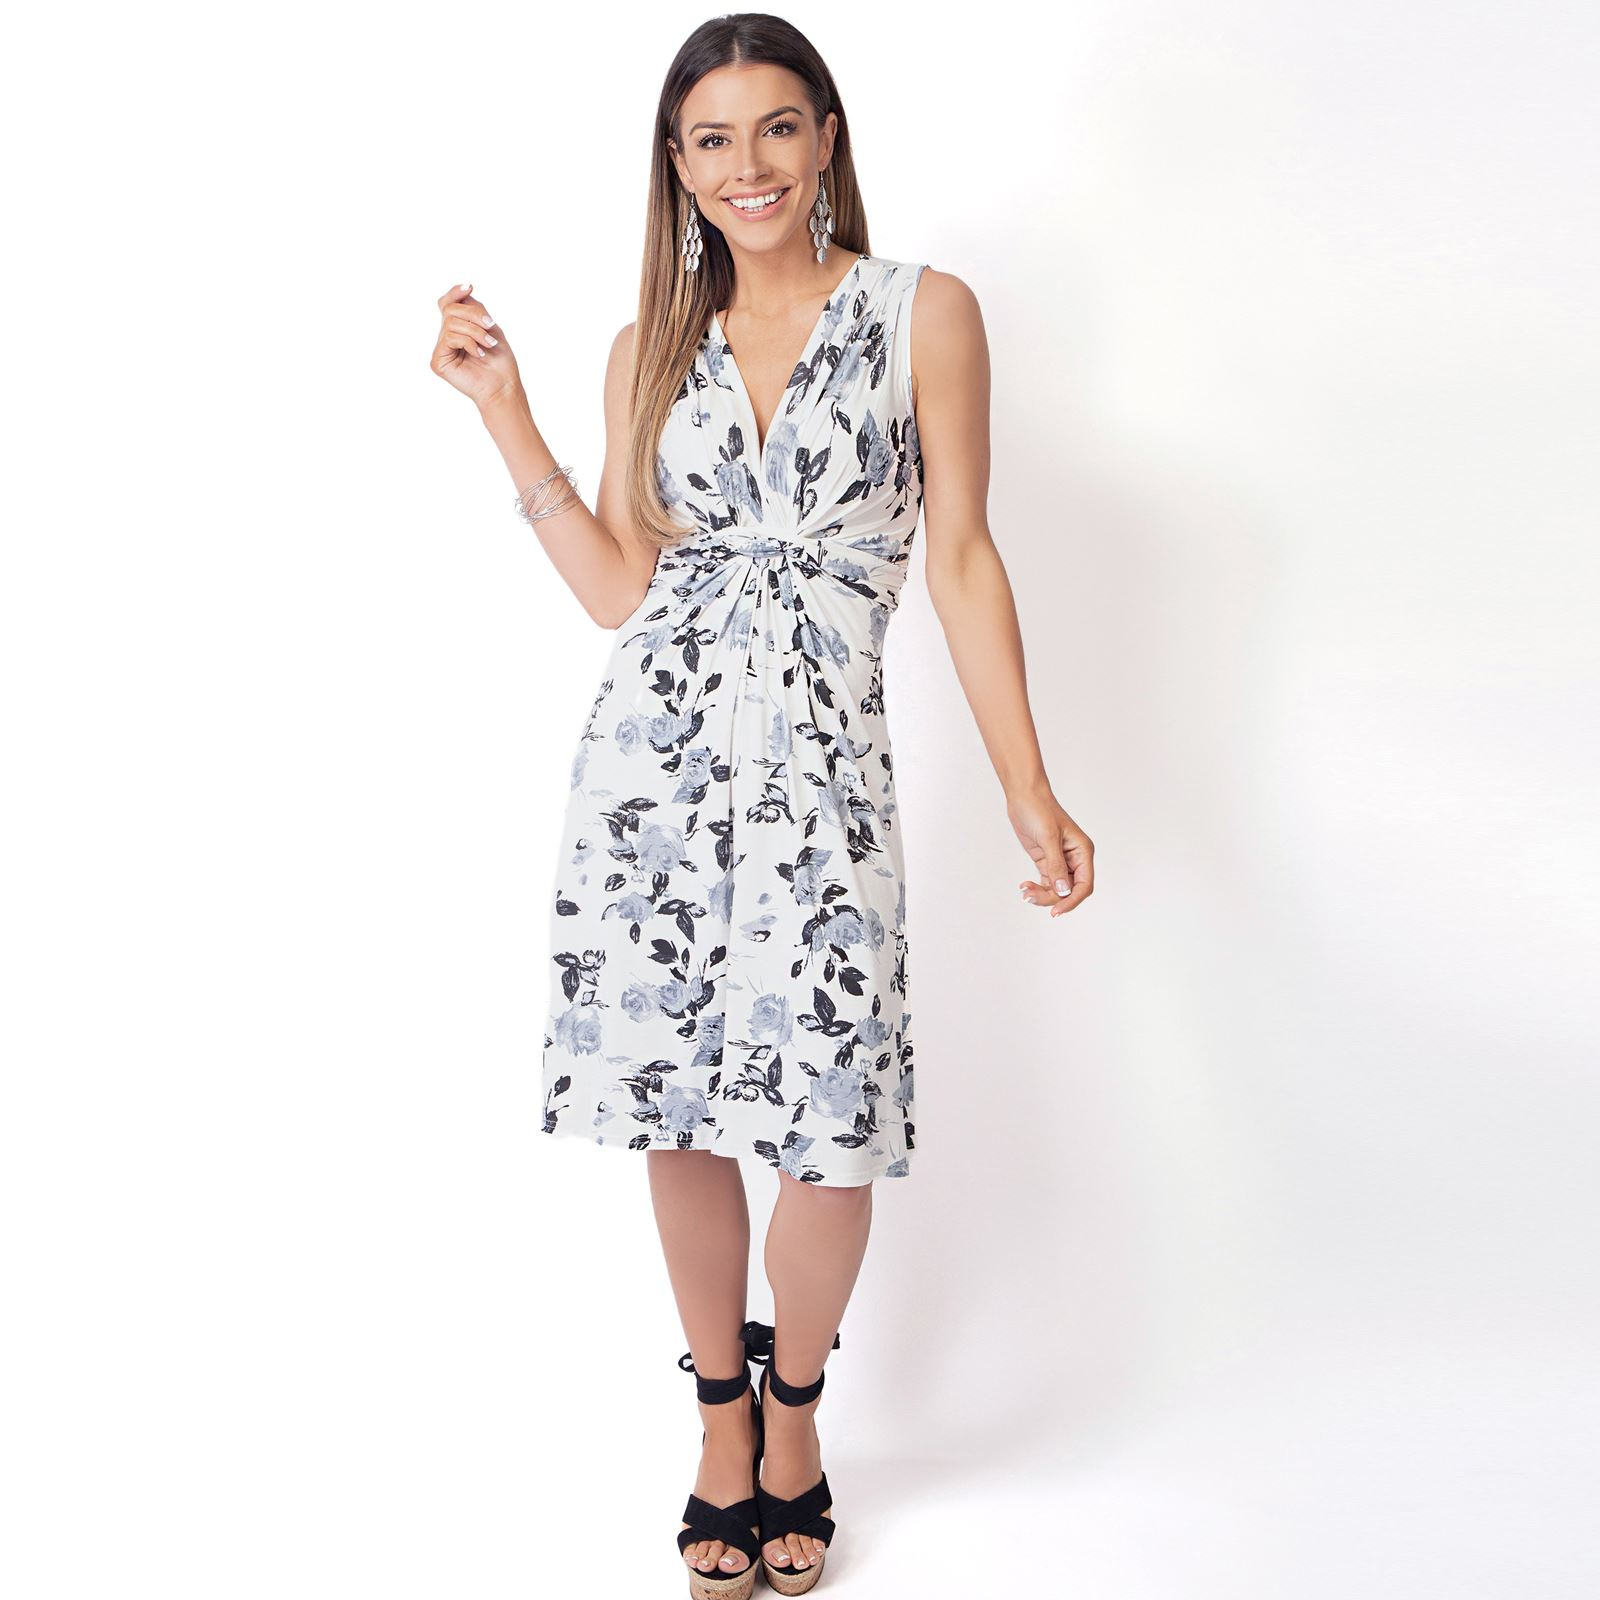 Womens-Floral-Print-Dress-Midi-Drape-Ruched-Front-Knot-Tie-Belt-Casual-Party thumbnail 6